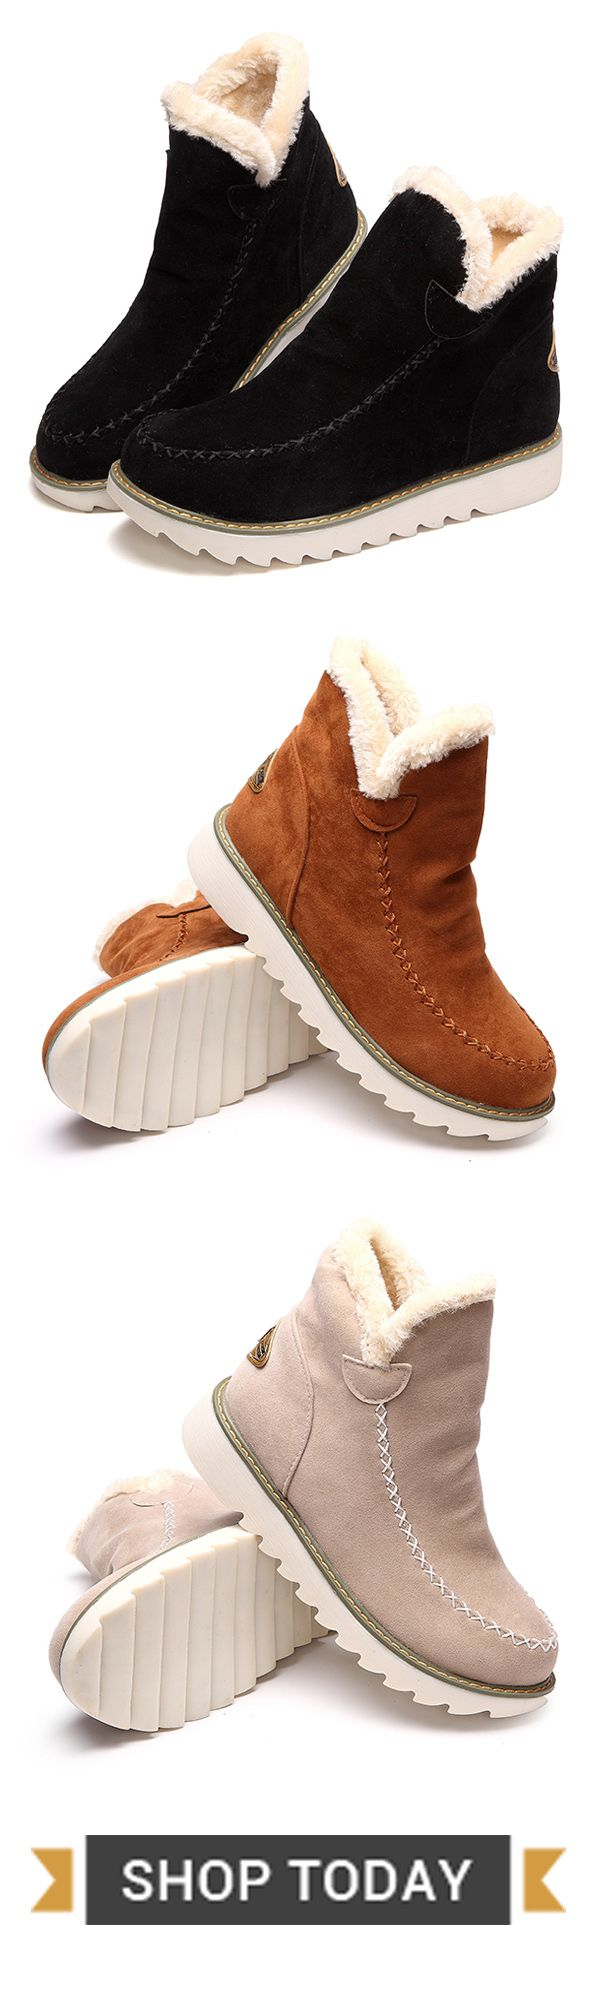 US$23.89  Big Size Pure Color Warm Fur Lining Winter Ankle Snow Boots For Women